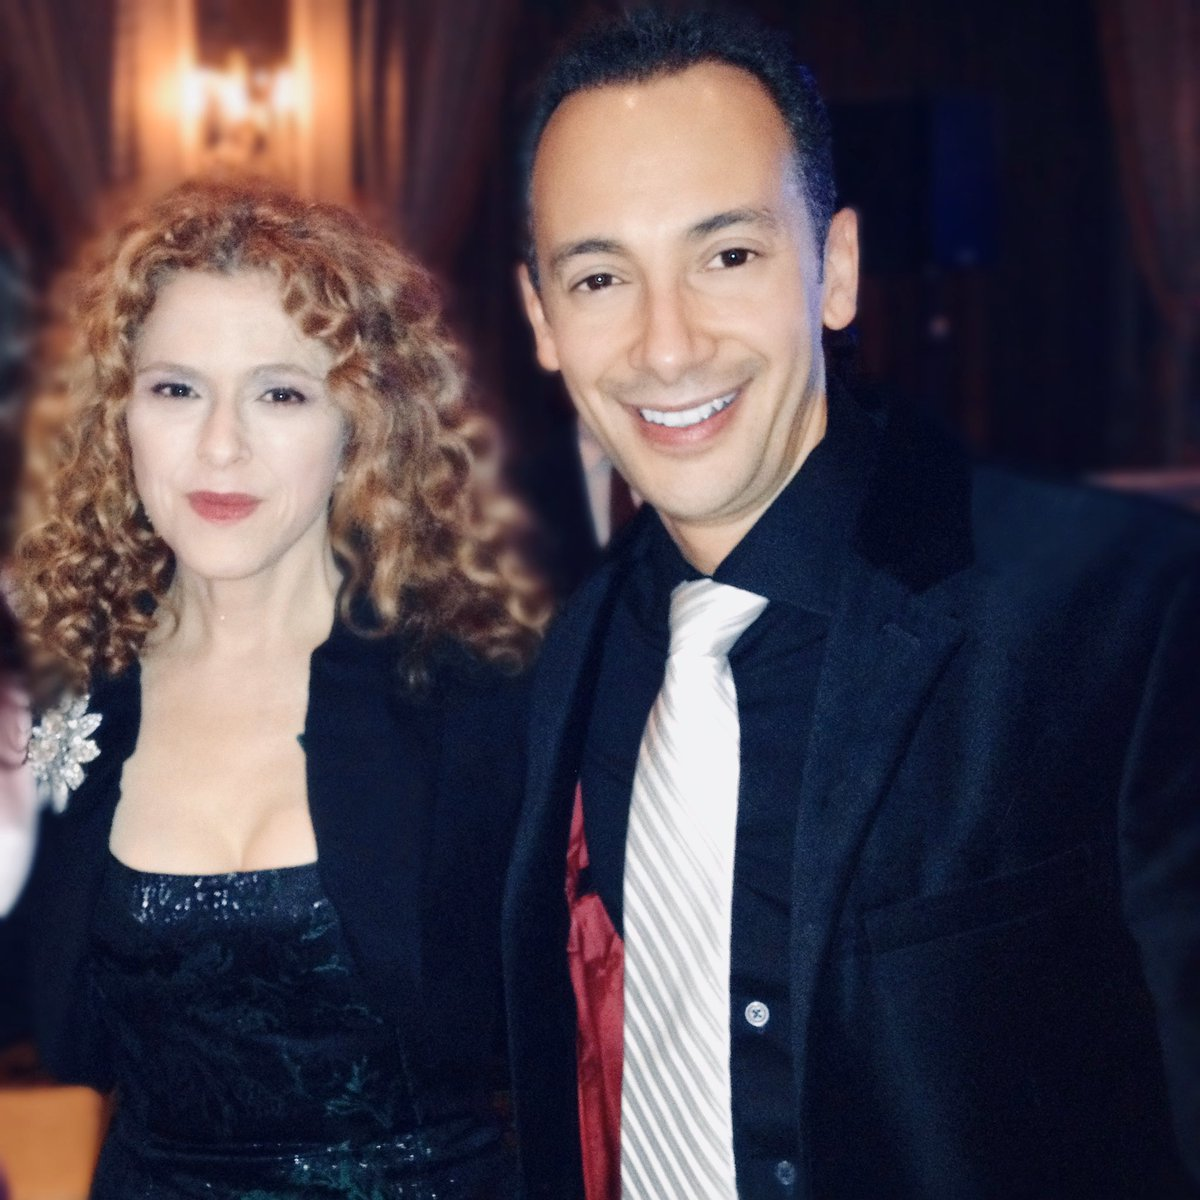 Super Happy Birthday to the lovely outstanding actress Bernadette Peters! May your special day be wonderful and amazing...just like you!😊  #birthday #actress #bernadettepeters #birthdaygirl #birthdaycake #happy #carloskeyes #actor #celebrate